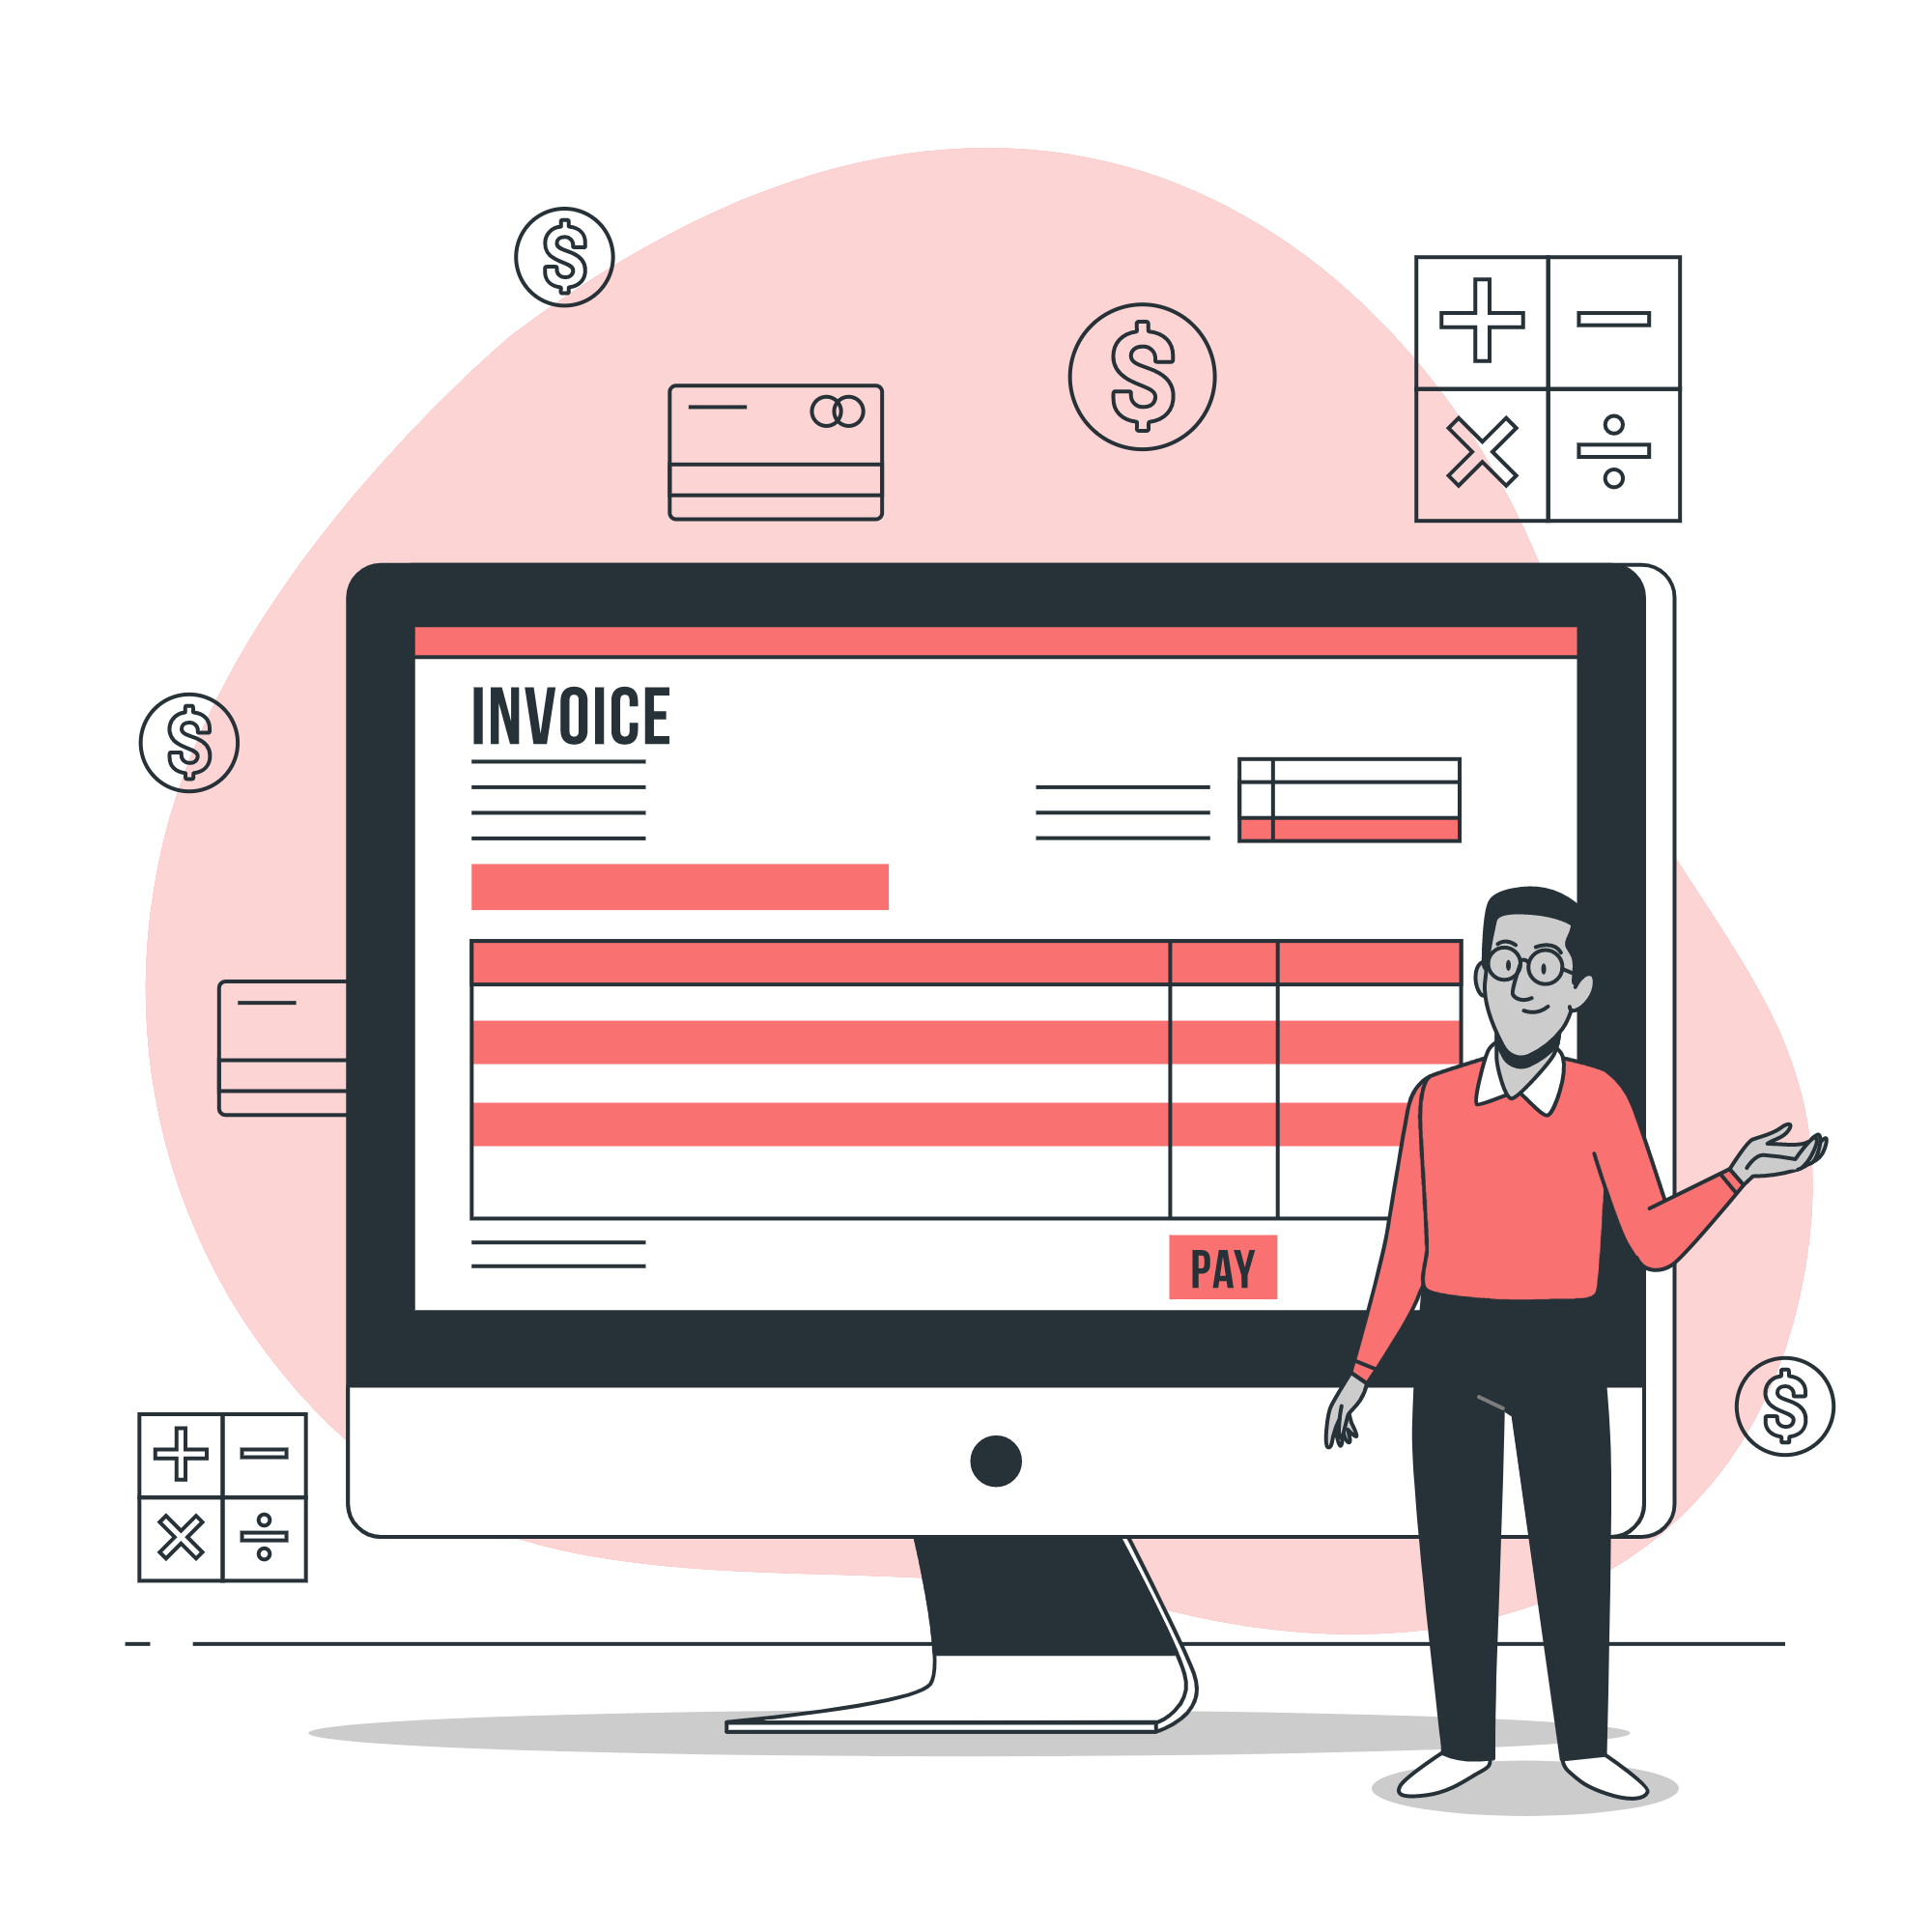 Invoice your customers <br>and get paid